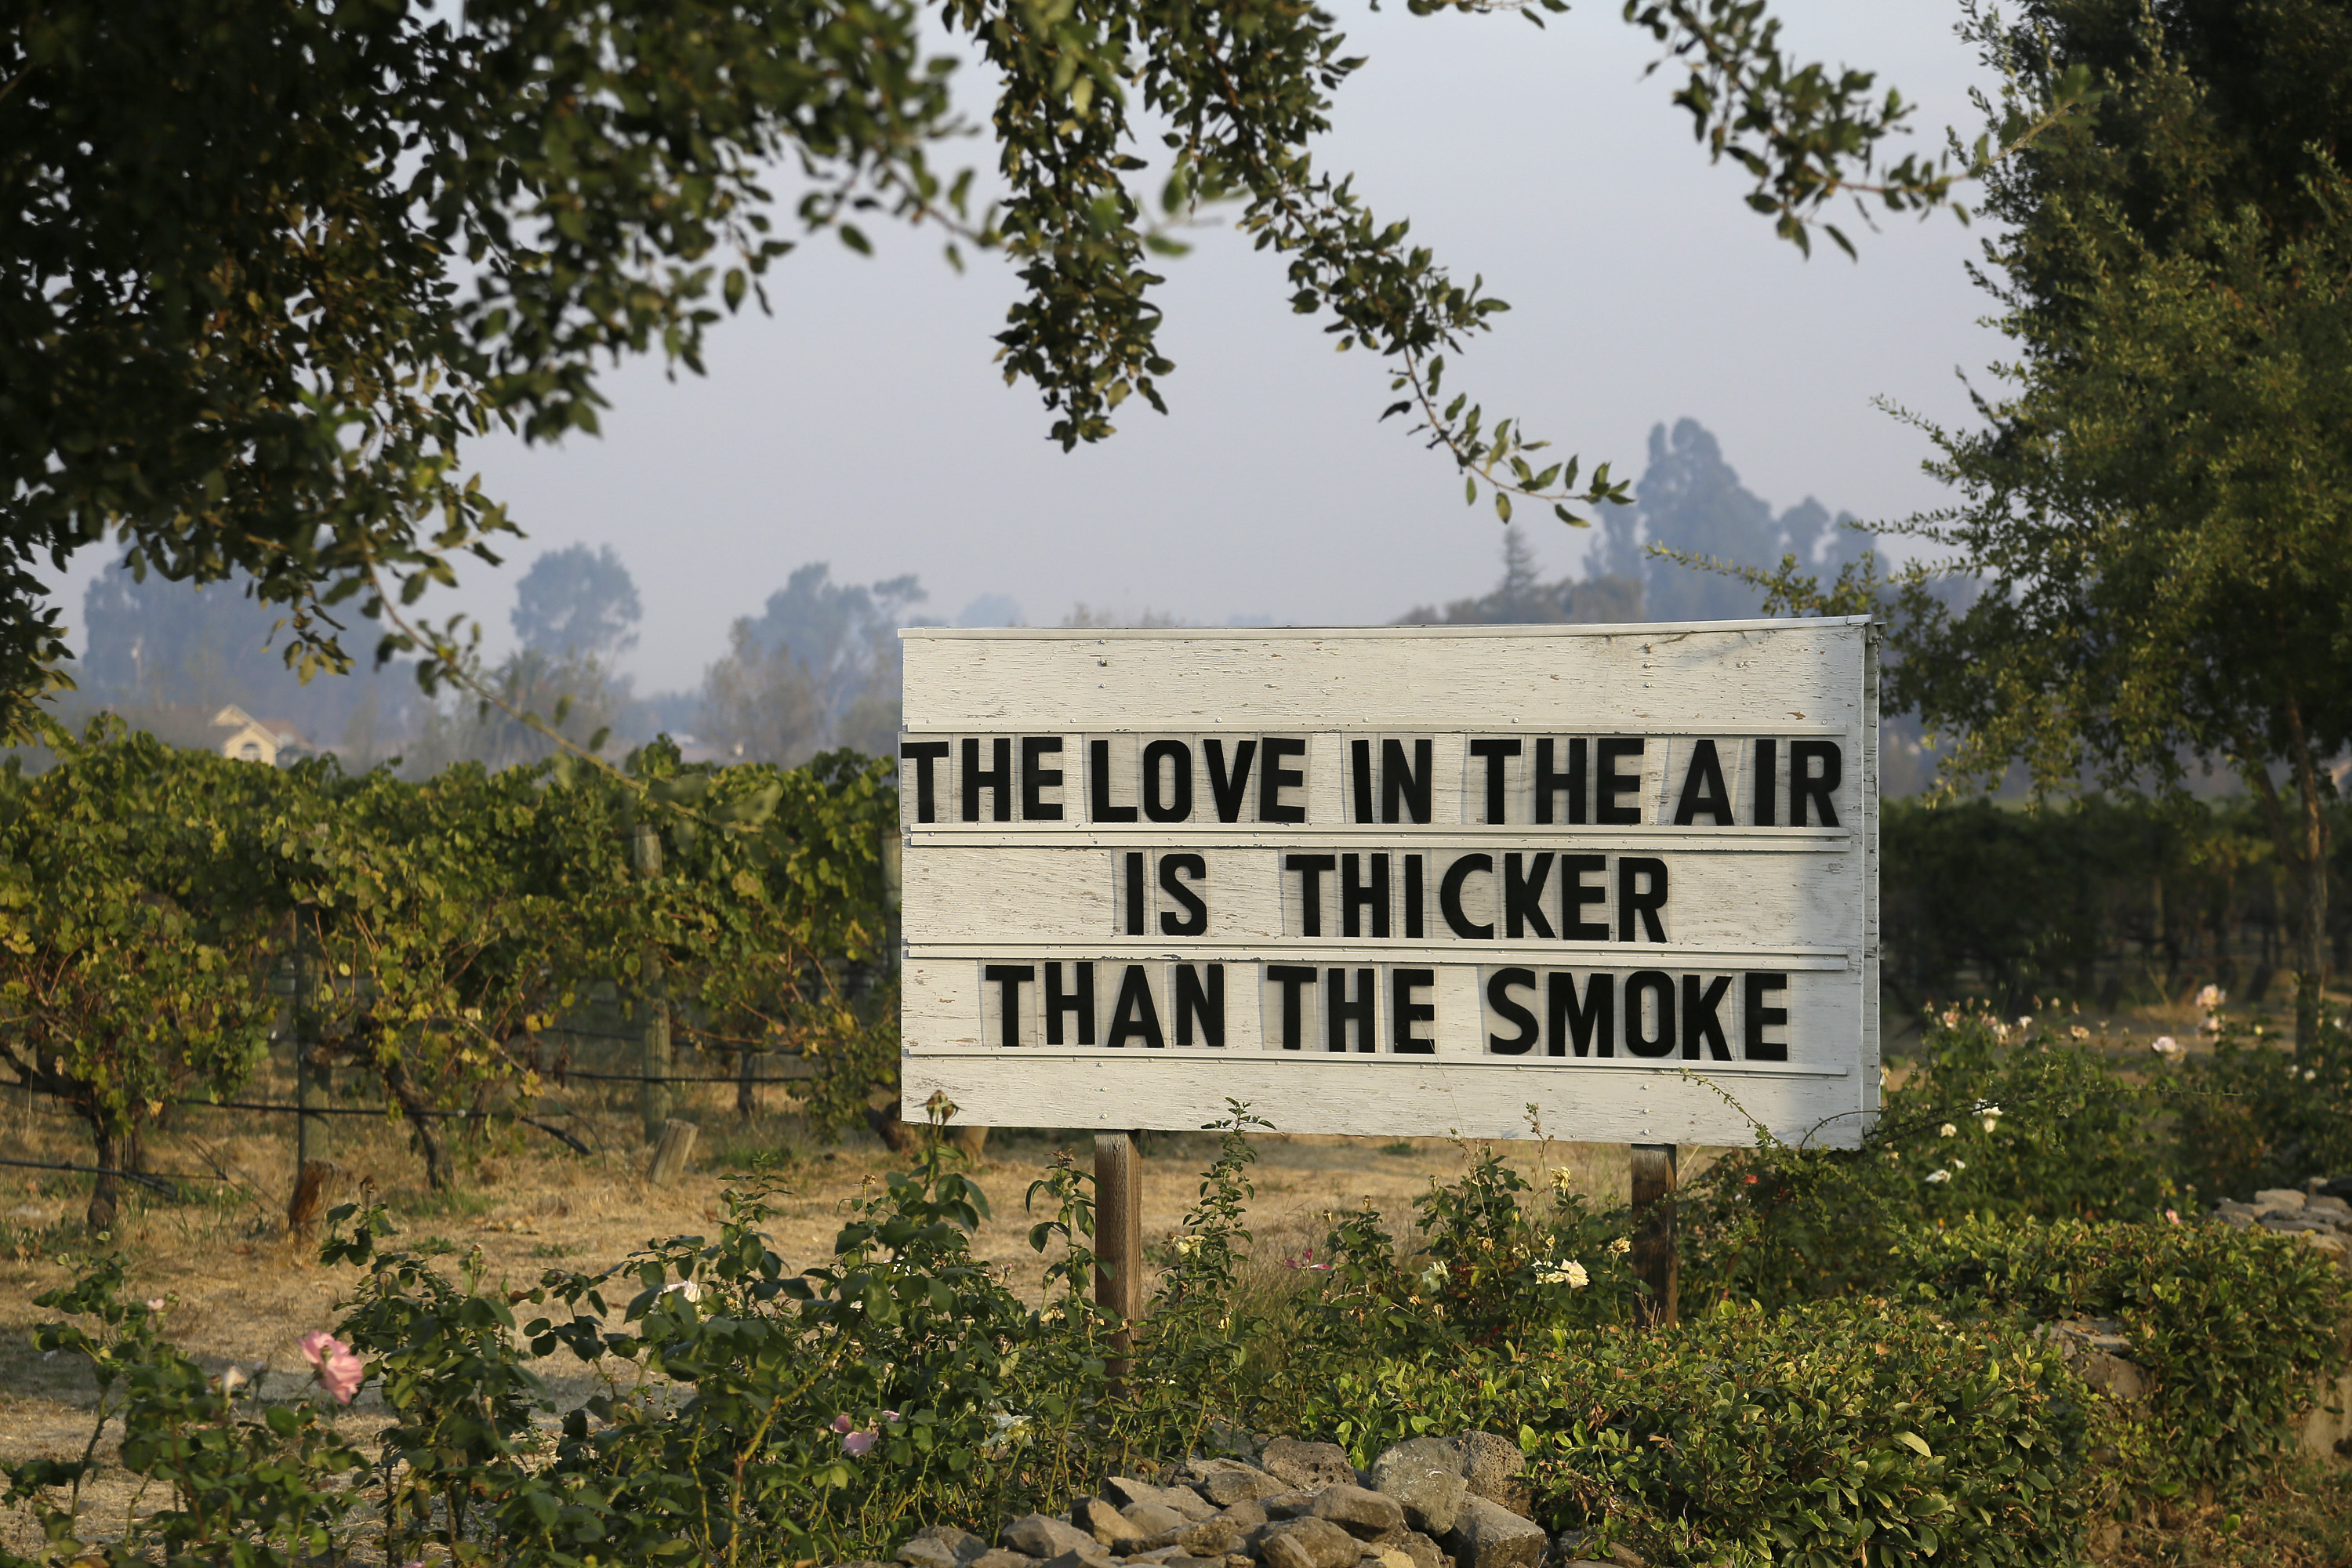 "<div class=""meta image-caption""><div class=""origin-logo origin-image none""><span>none</span></div><span class=""caption-text"">A sign about the recent wildfires stands in a vineyard outside the Cline Cellars winery Monday, Oct. 16, 2017, in Sonoma, Calif. (Eric Risberg/AP Photo)</span></div>"